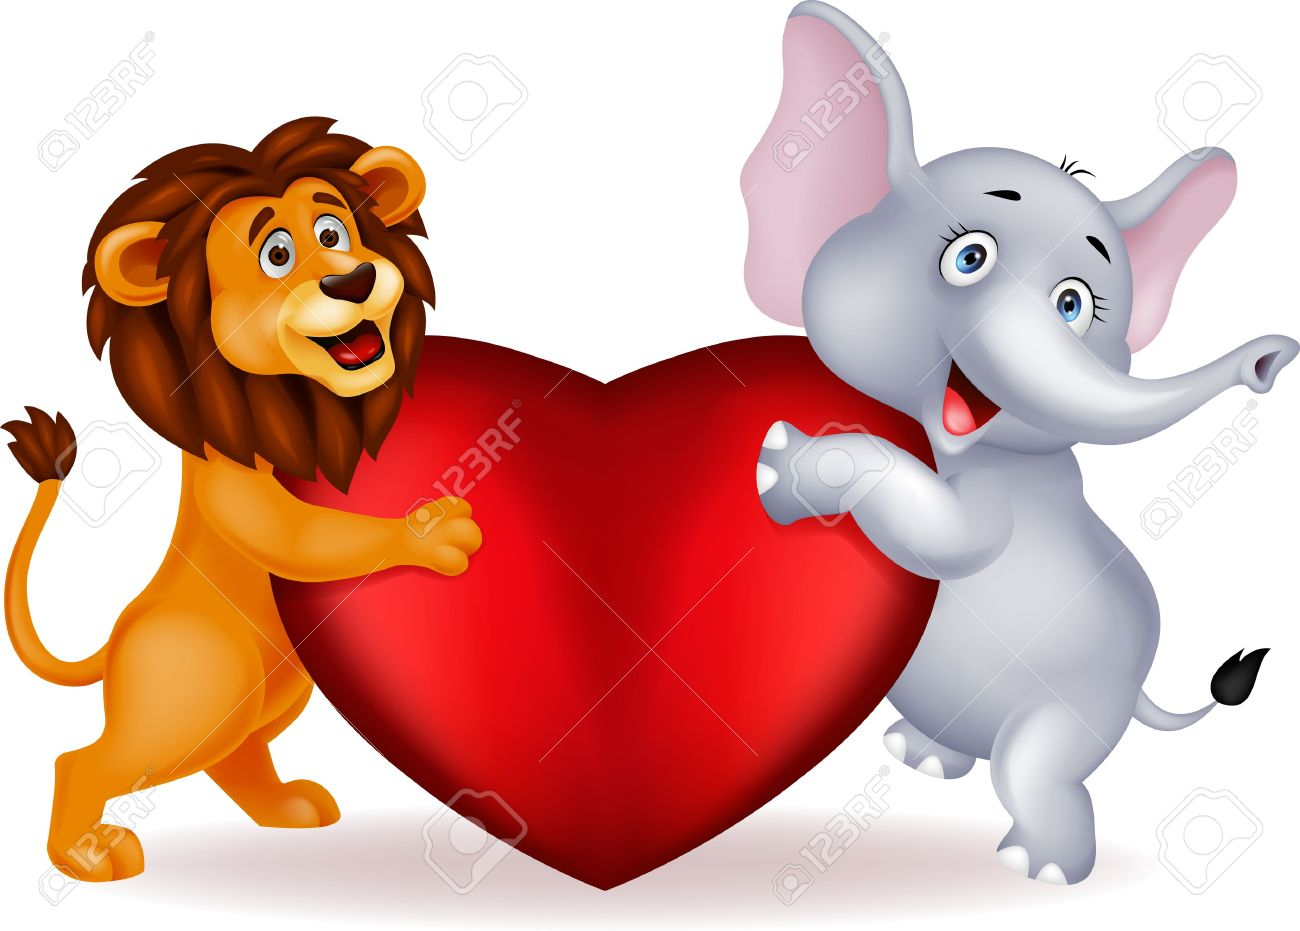 lion and elephant clipart #19